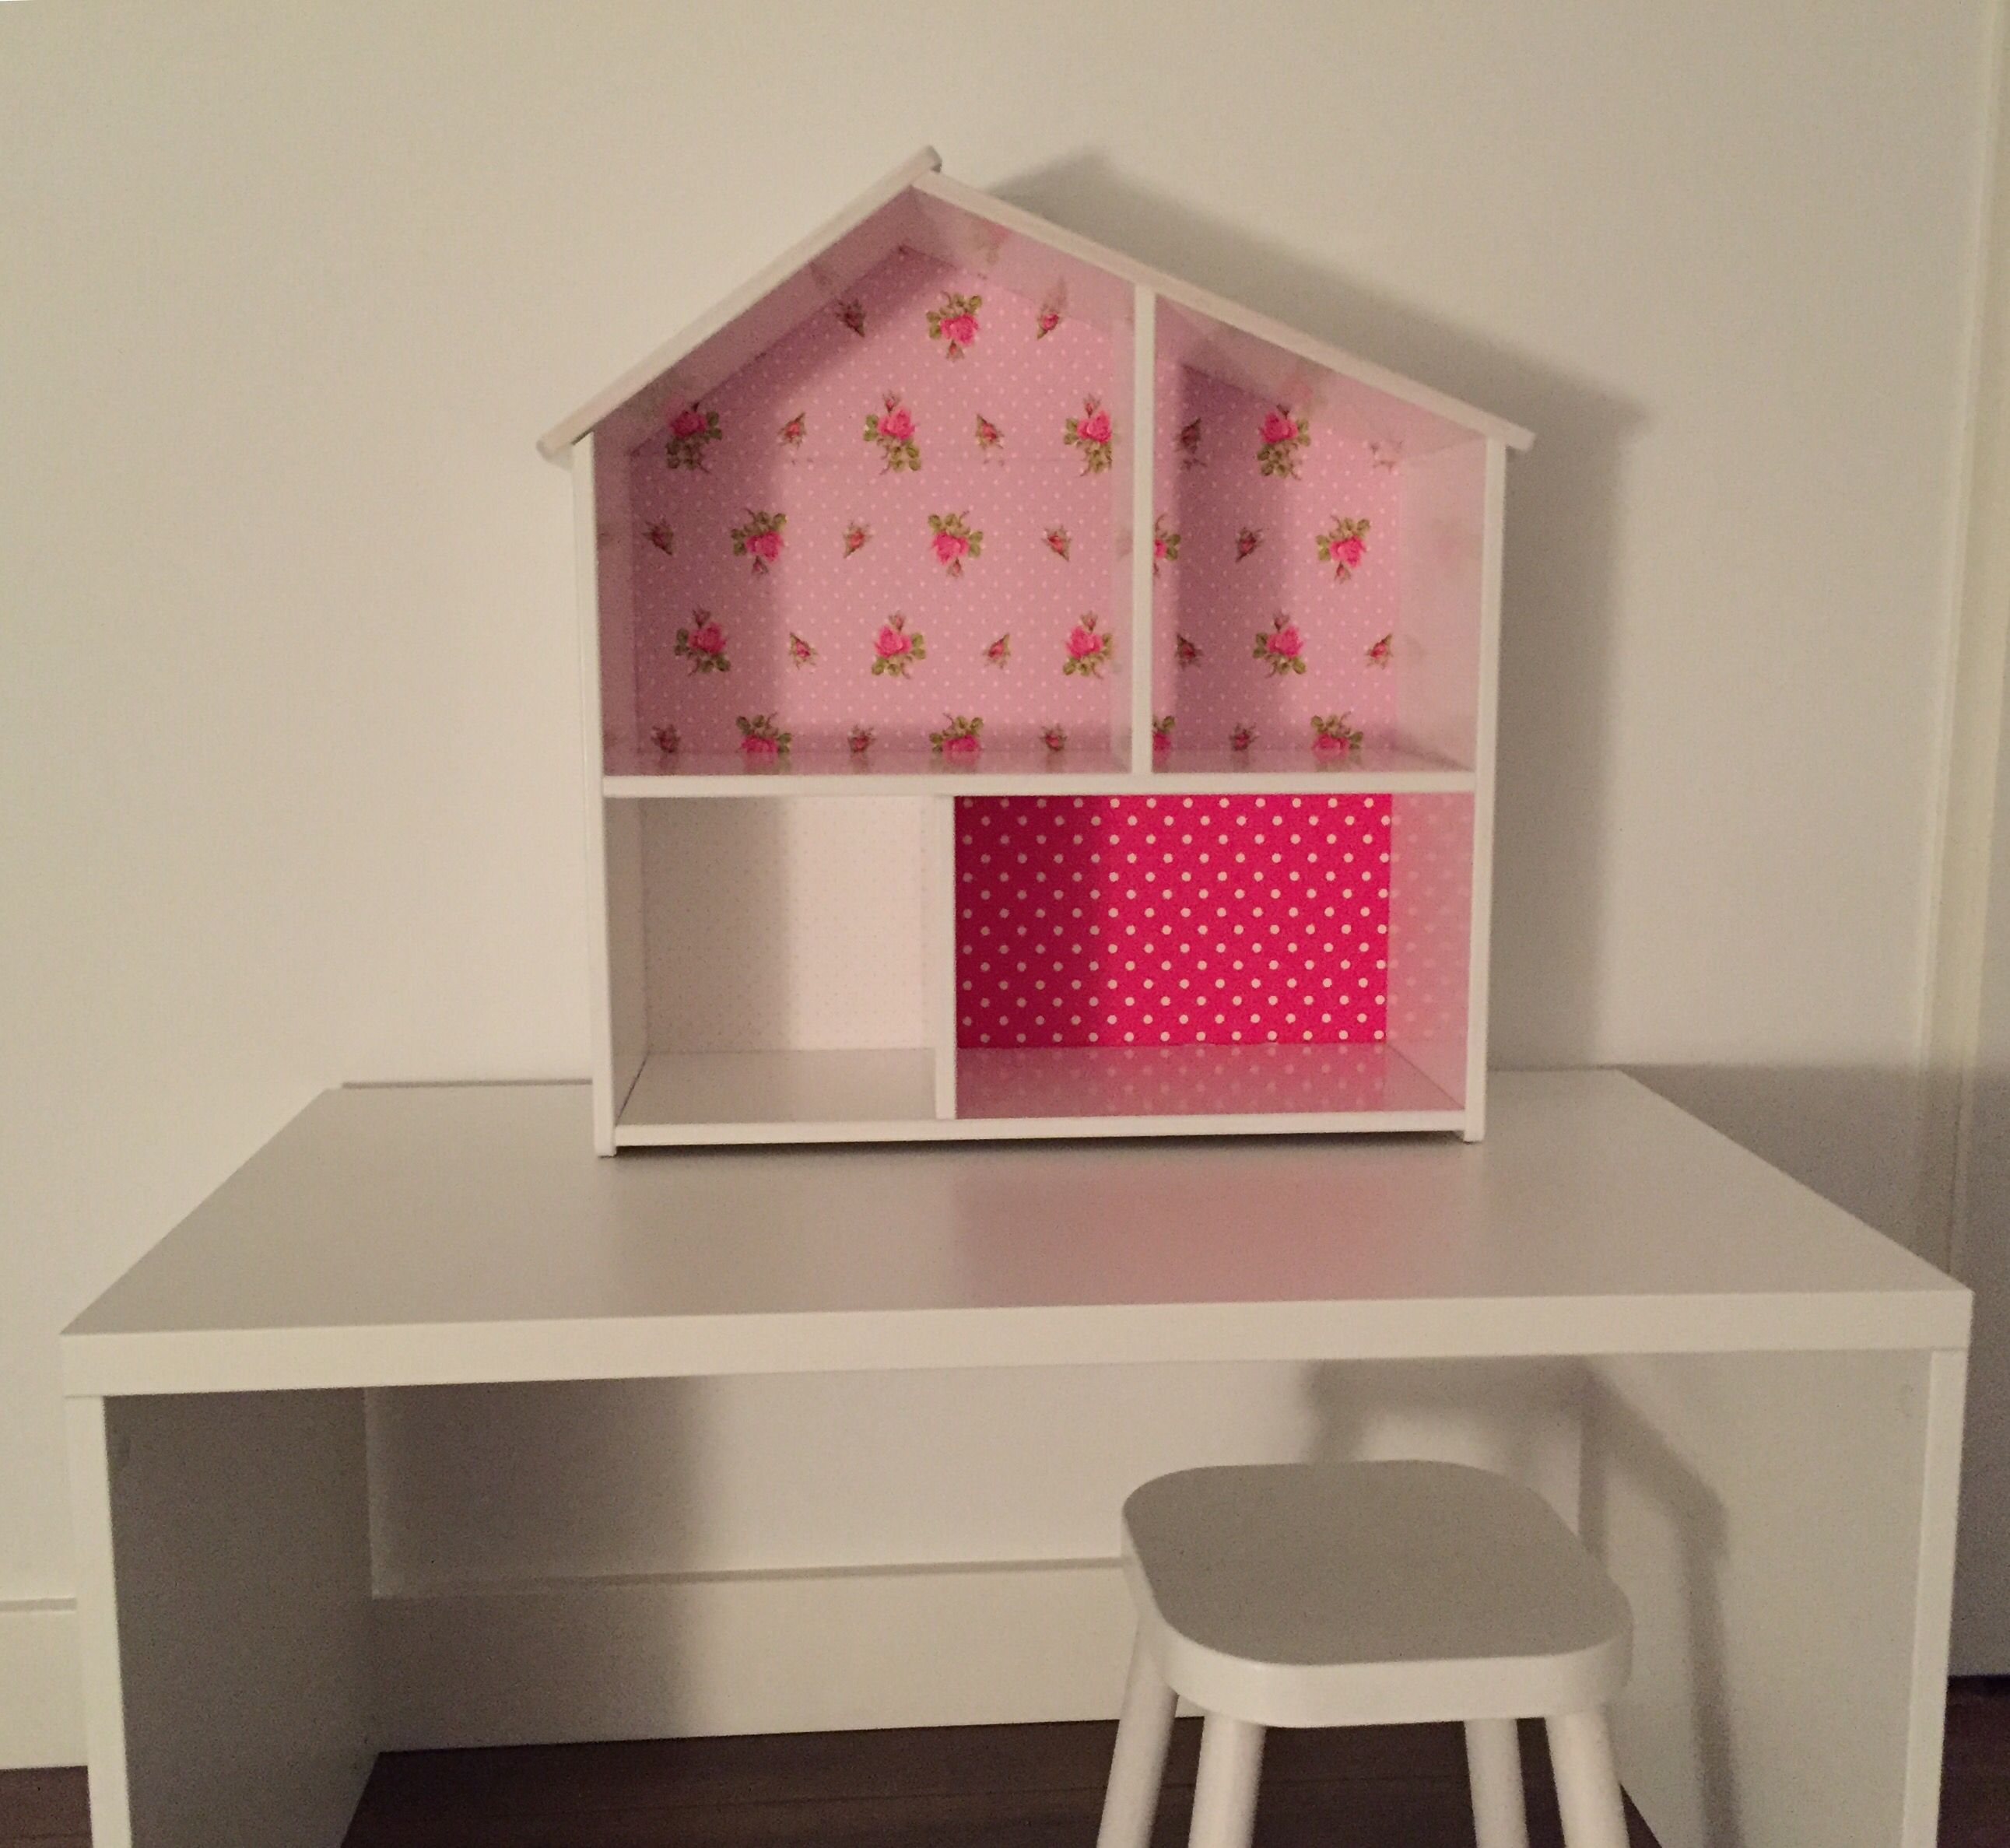 diy poppenhuis flisat ikea o o pinterest kinderzimmer und selfmade. Black Bedroom Furniture Sets. Home Design Ideas